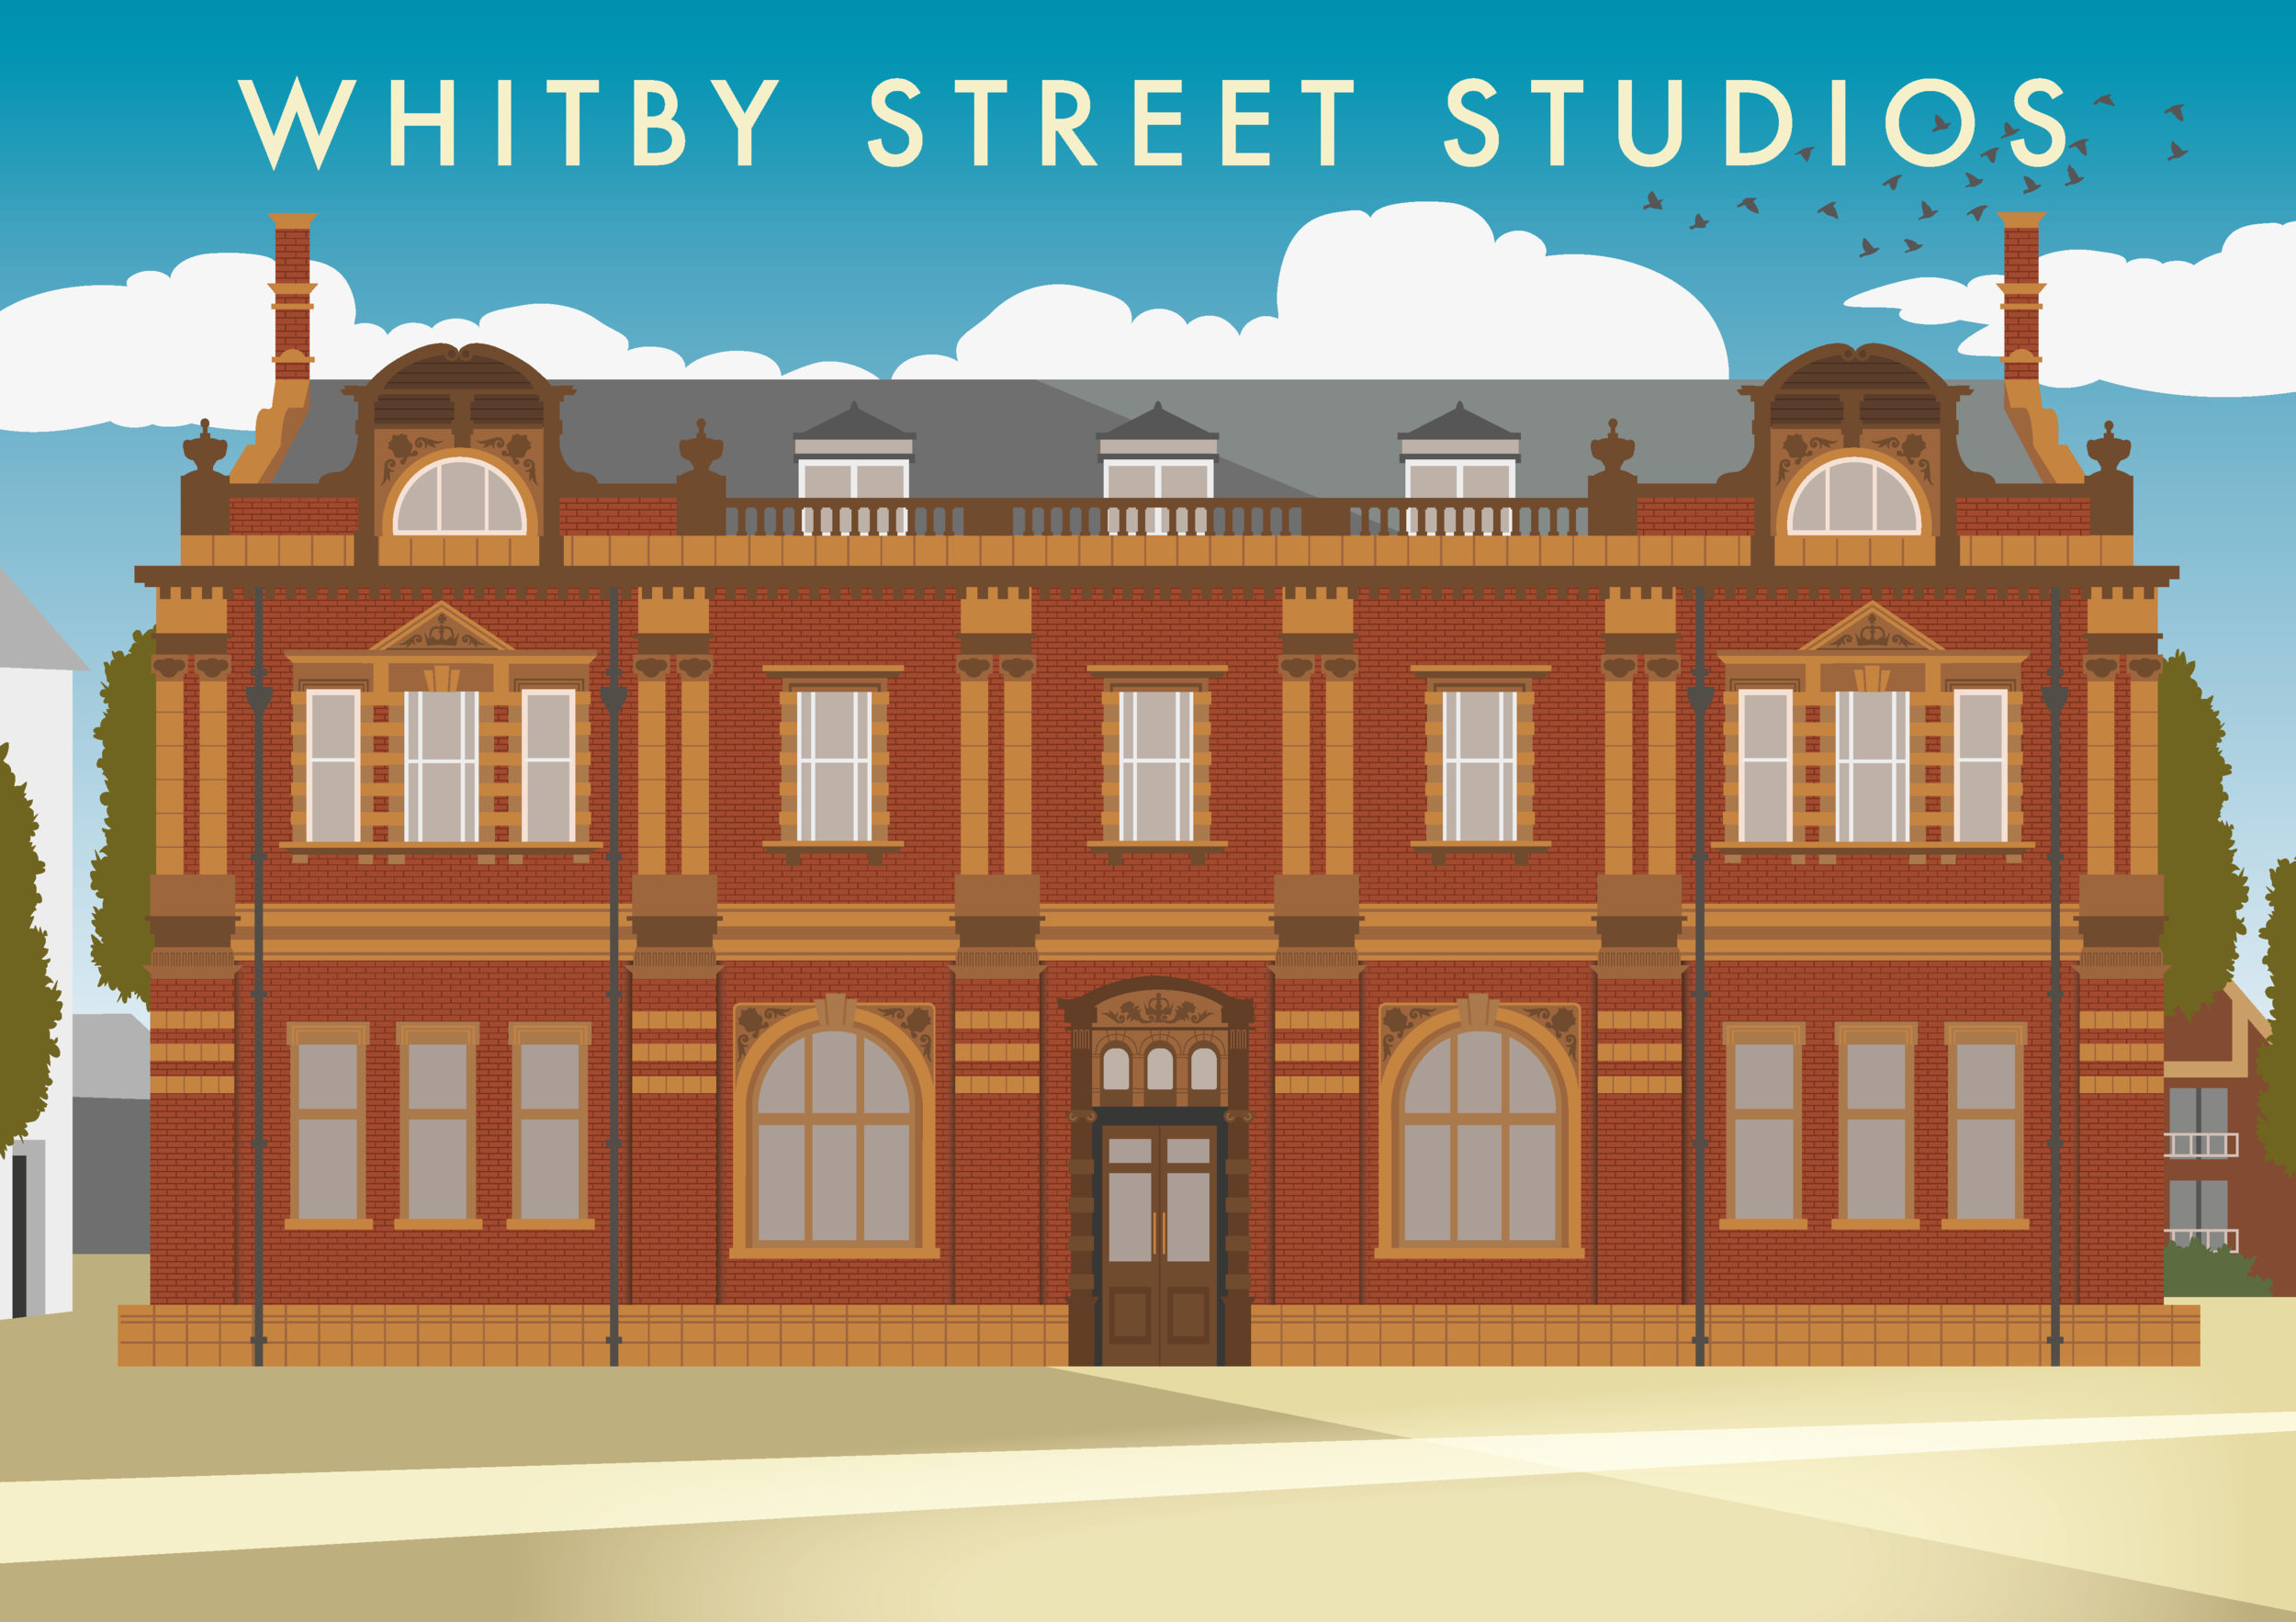 The Northern School of Art - Whitby Street Studios (Hartlepool) Illustration